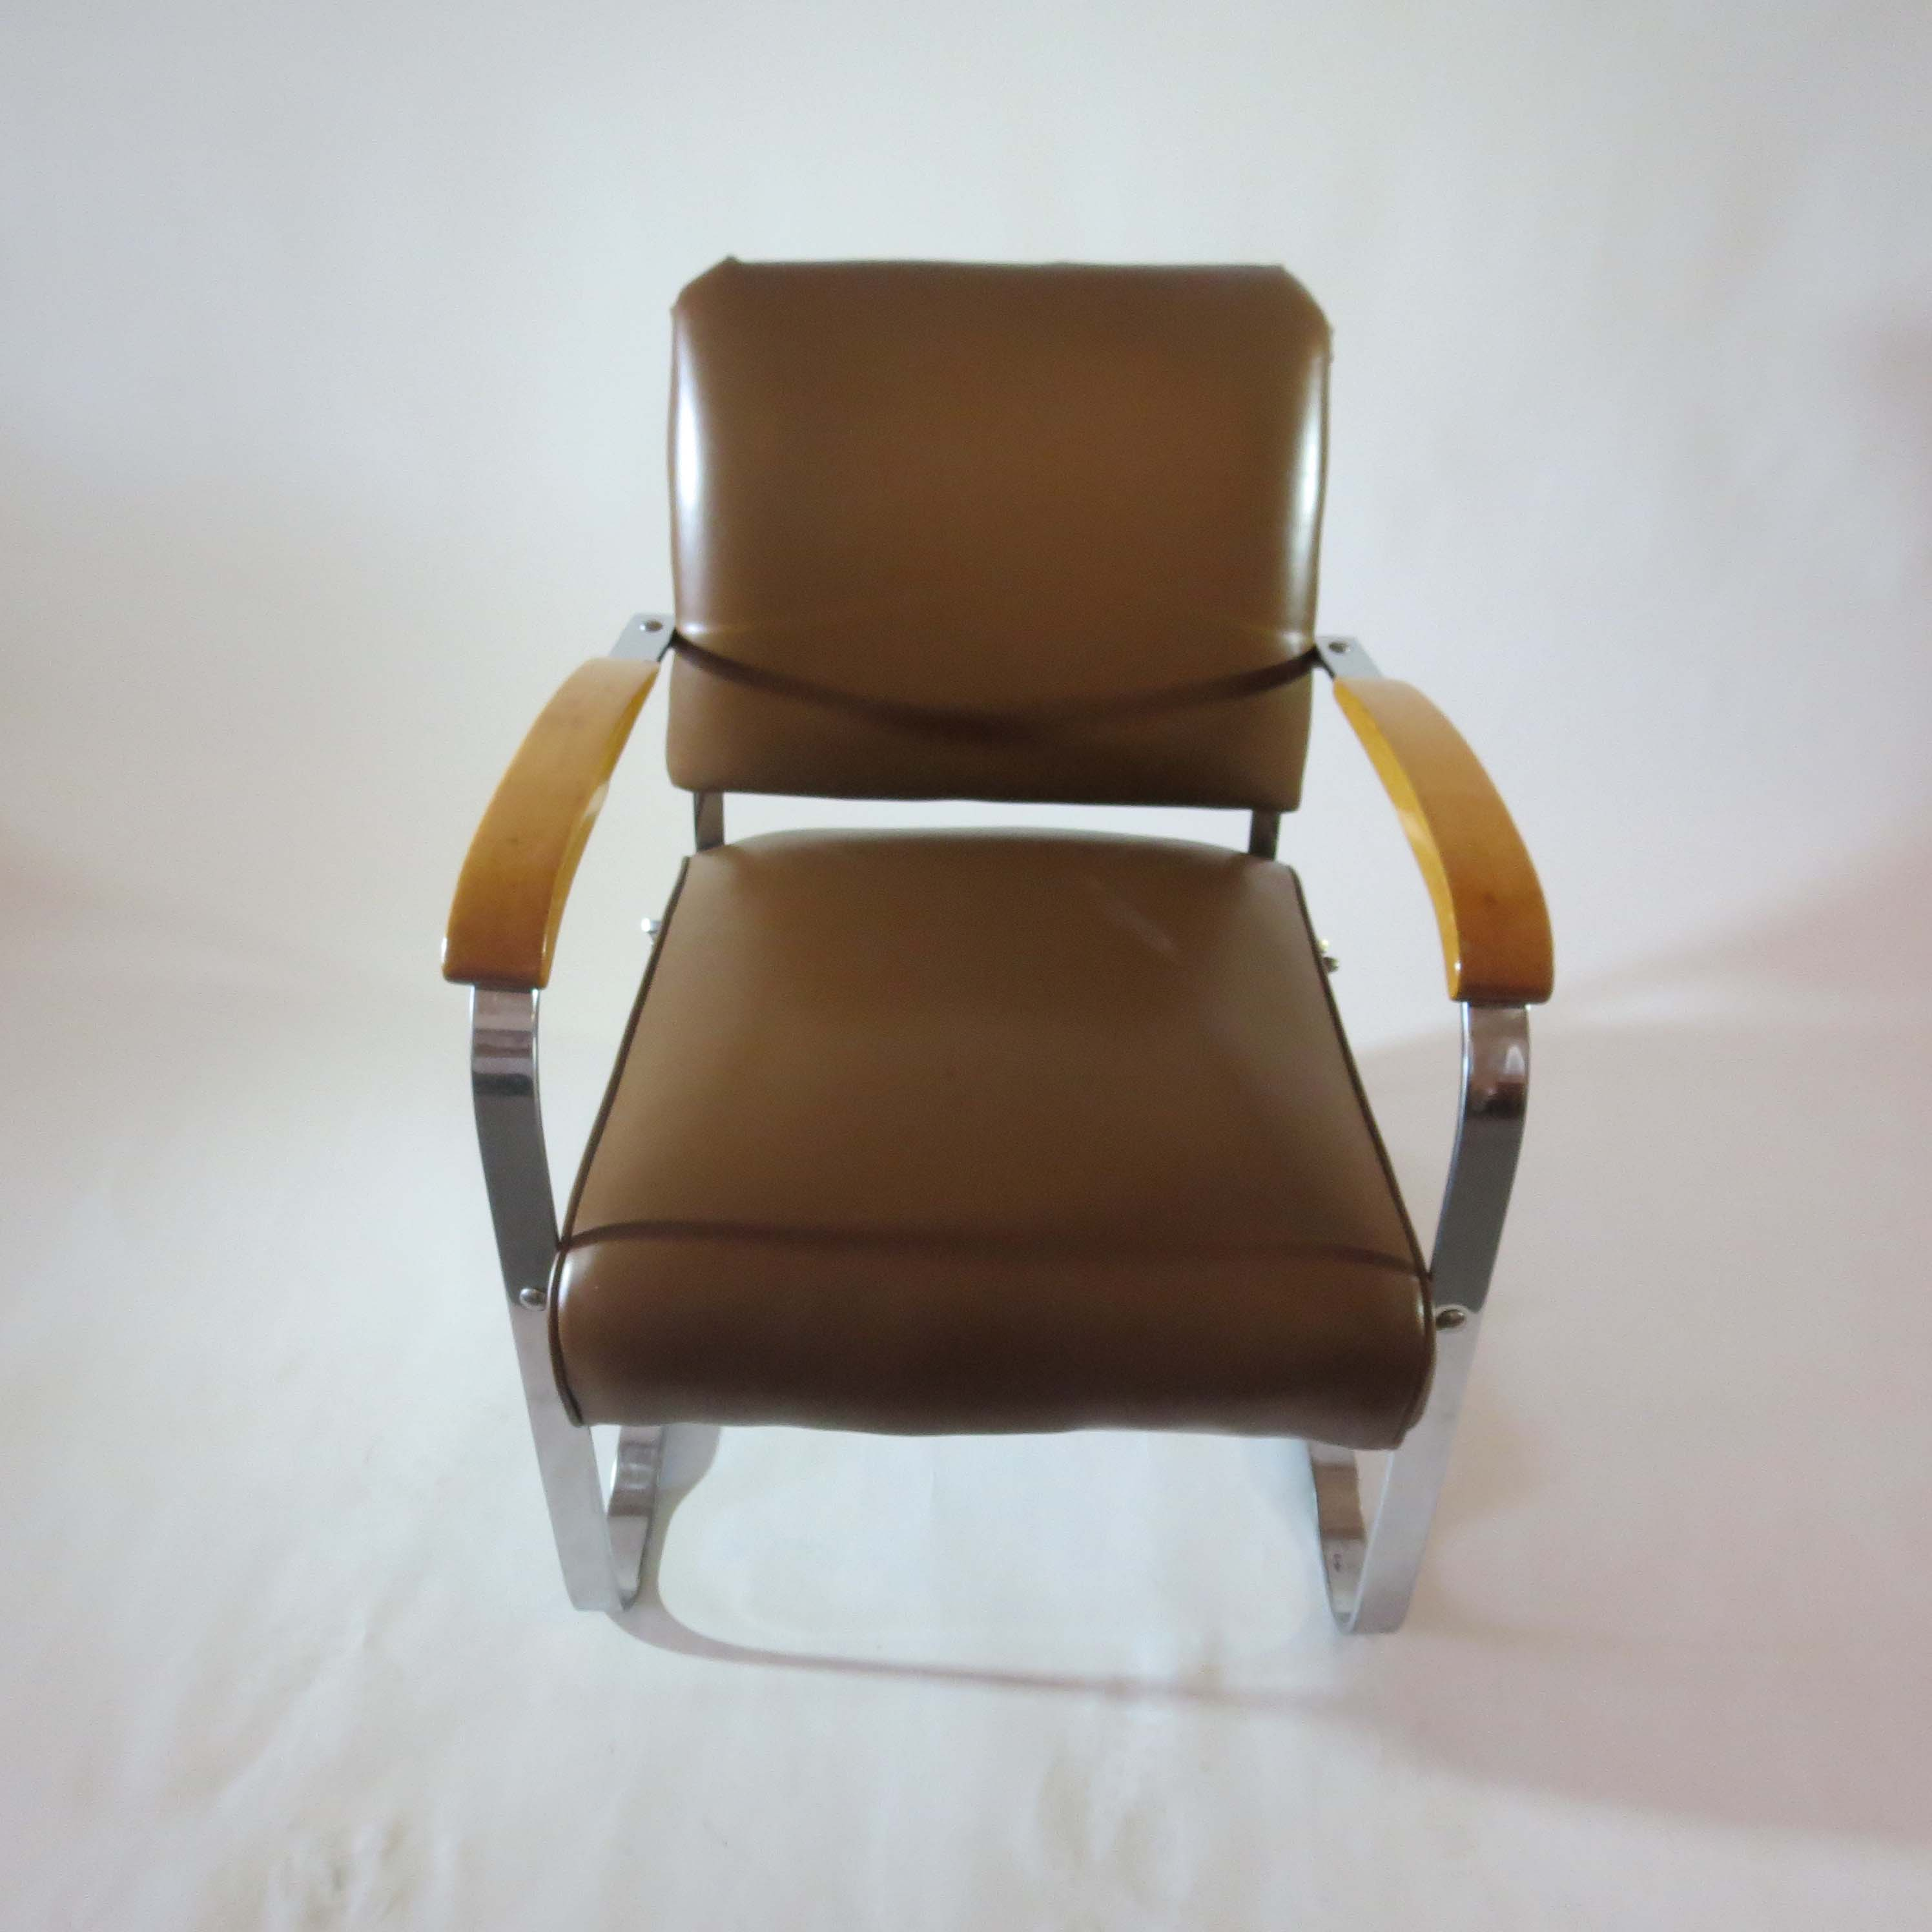 Pair Of American Art Deco Arm Chairs By The McKay Company